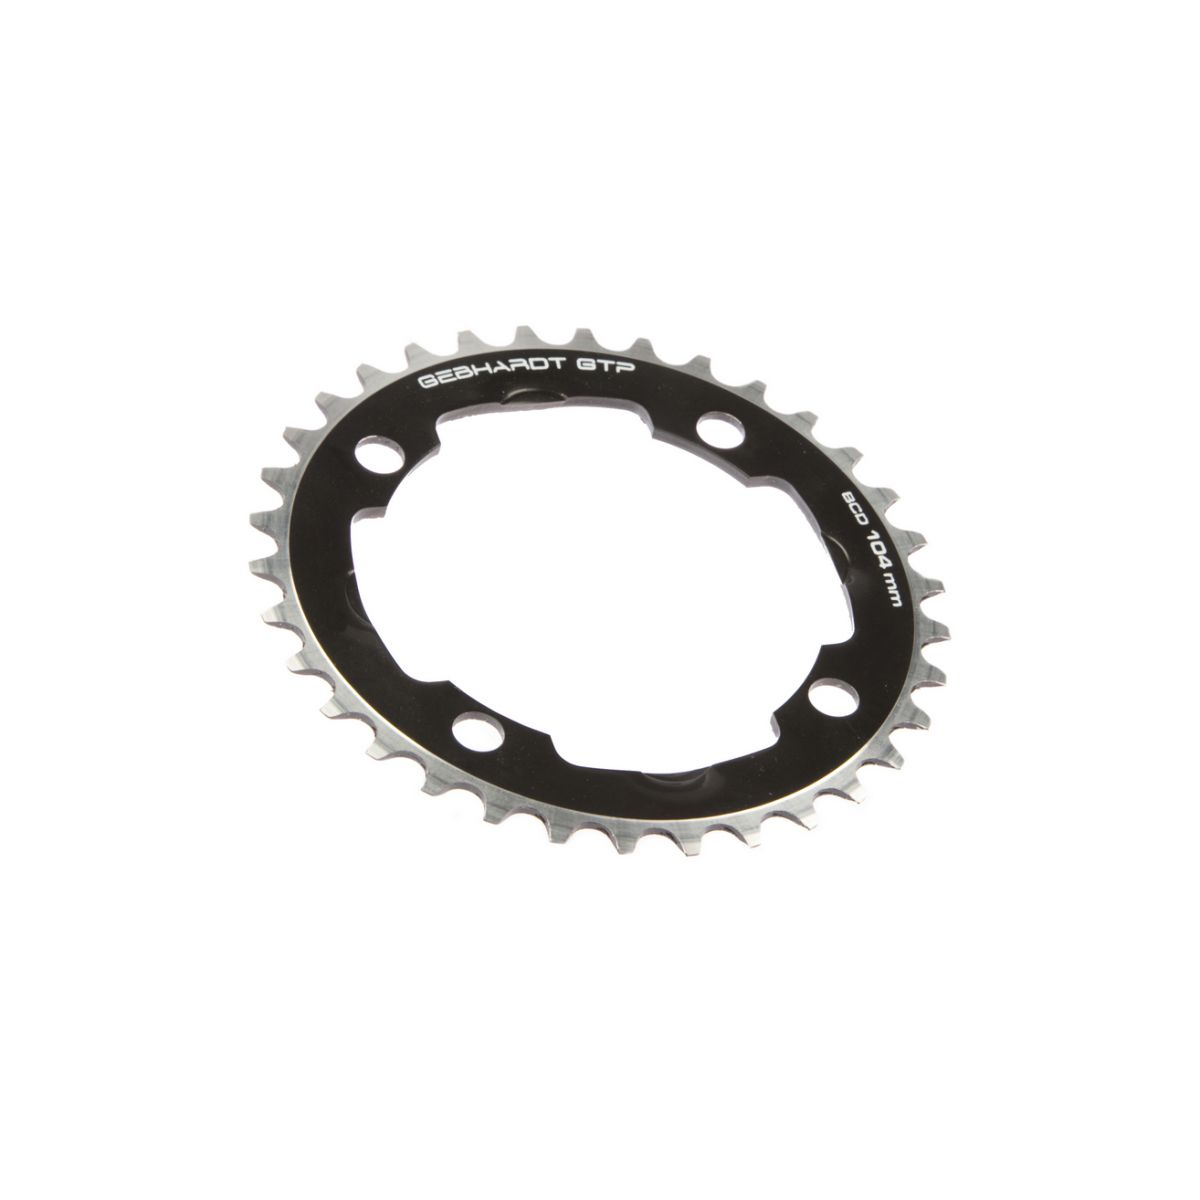 gebhardt chainring classic bcd 104 mm 4hole 36t black